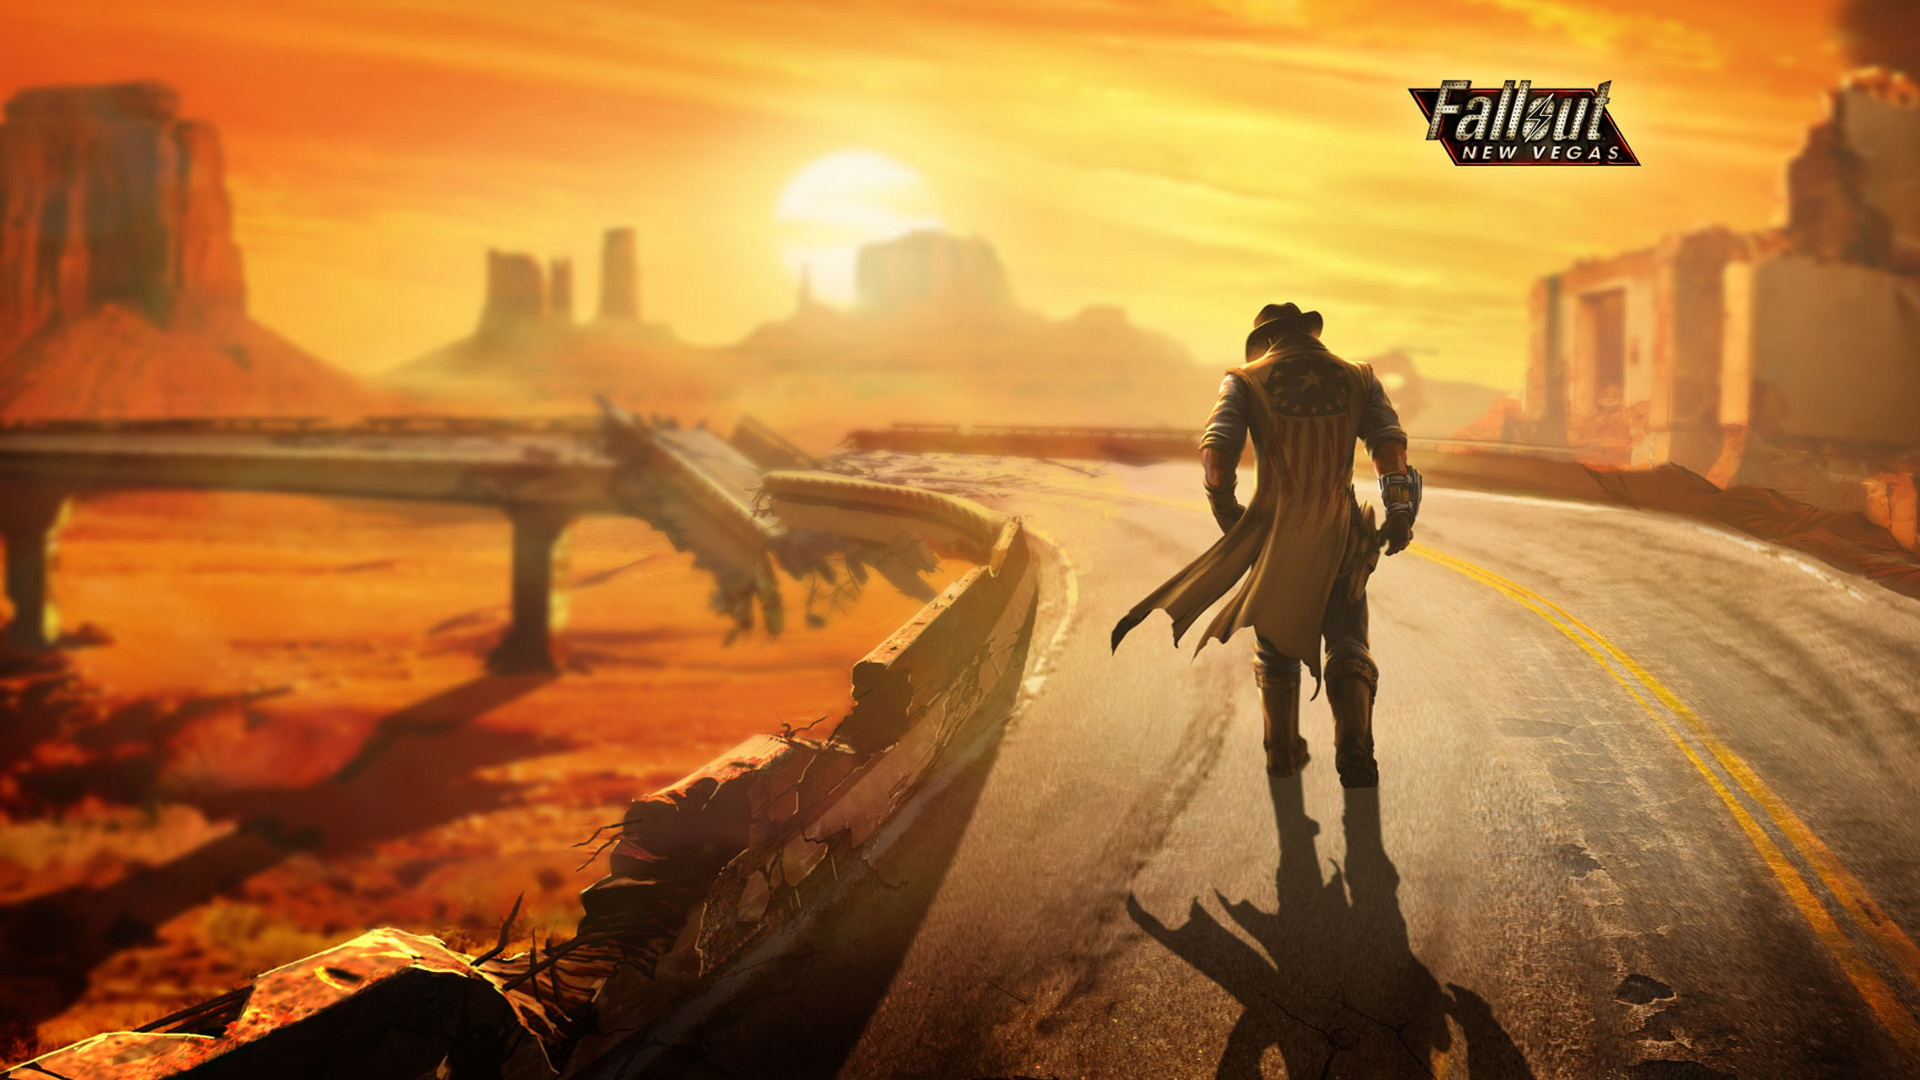 Games hd Wallpapers free Download